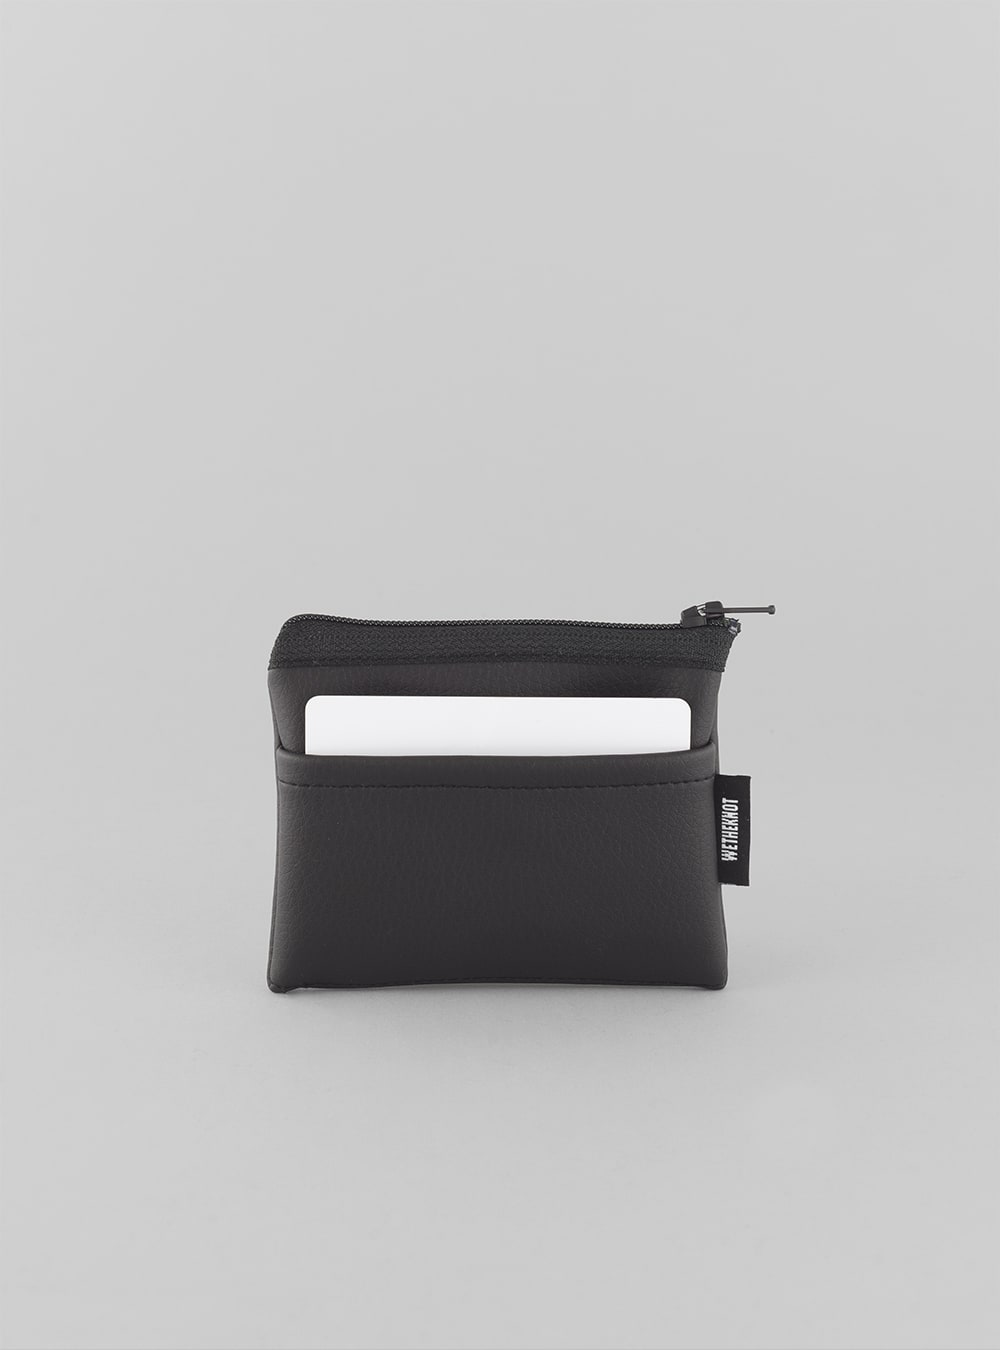 Card holder (black) in vegan leather, made in Portugal by wetheknot.